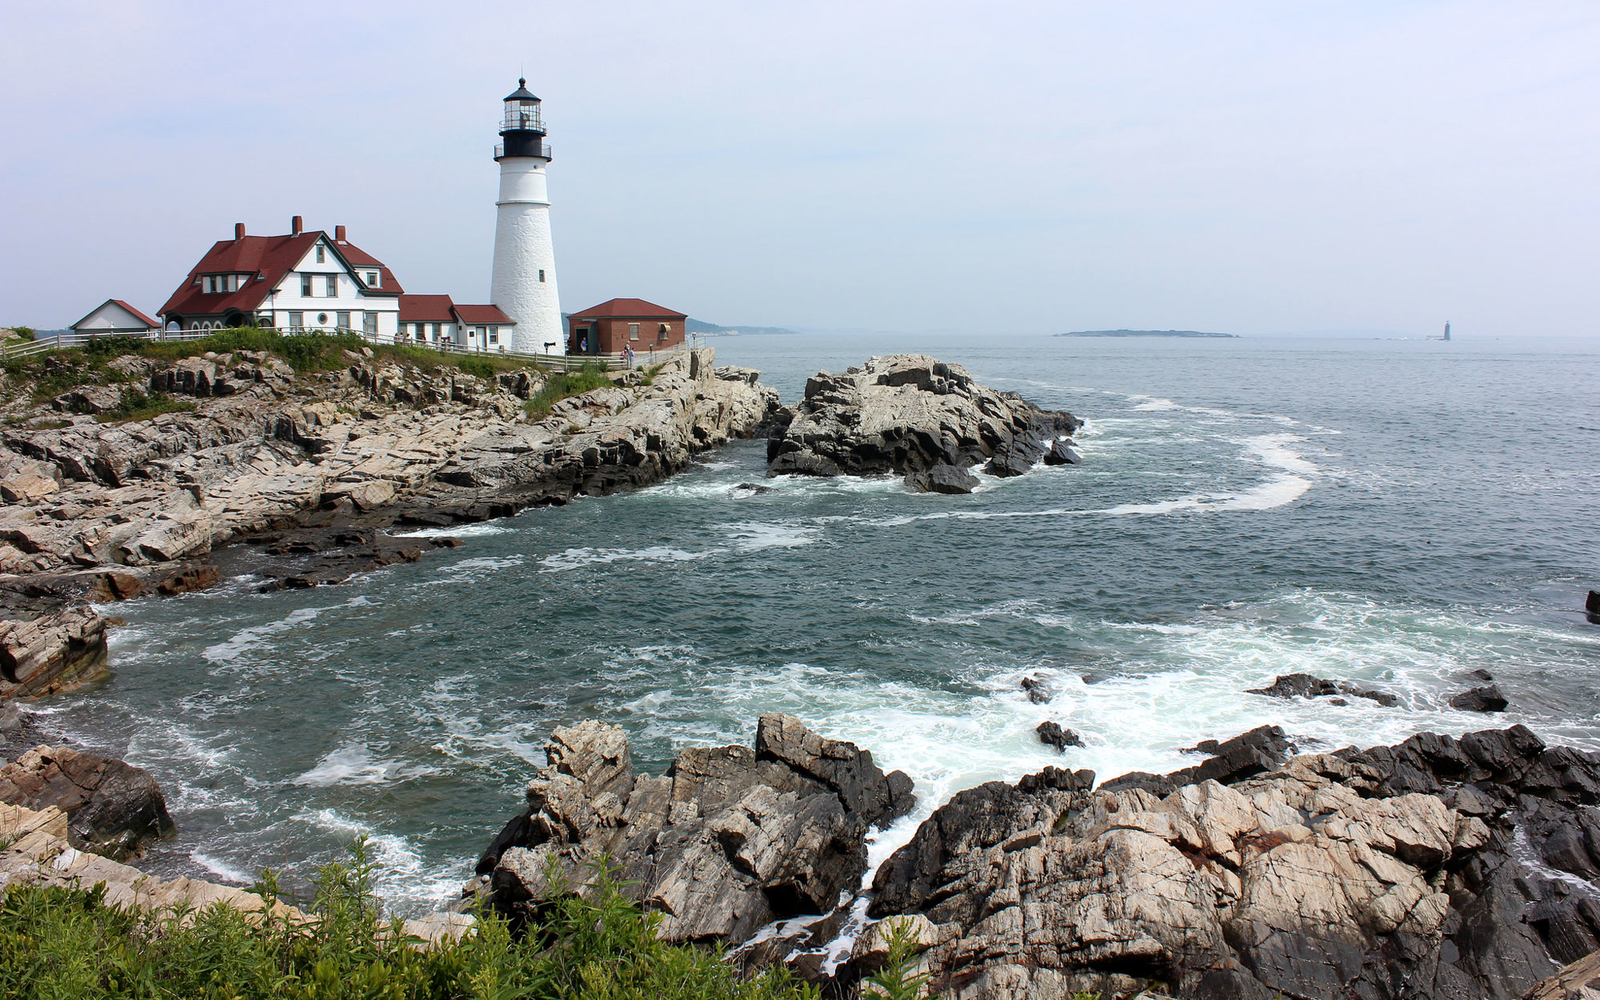 Head lighthouse